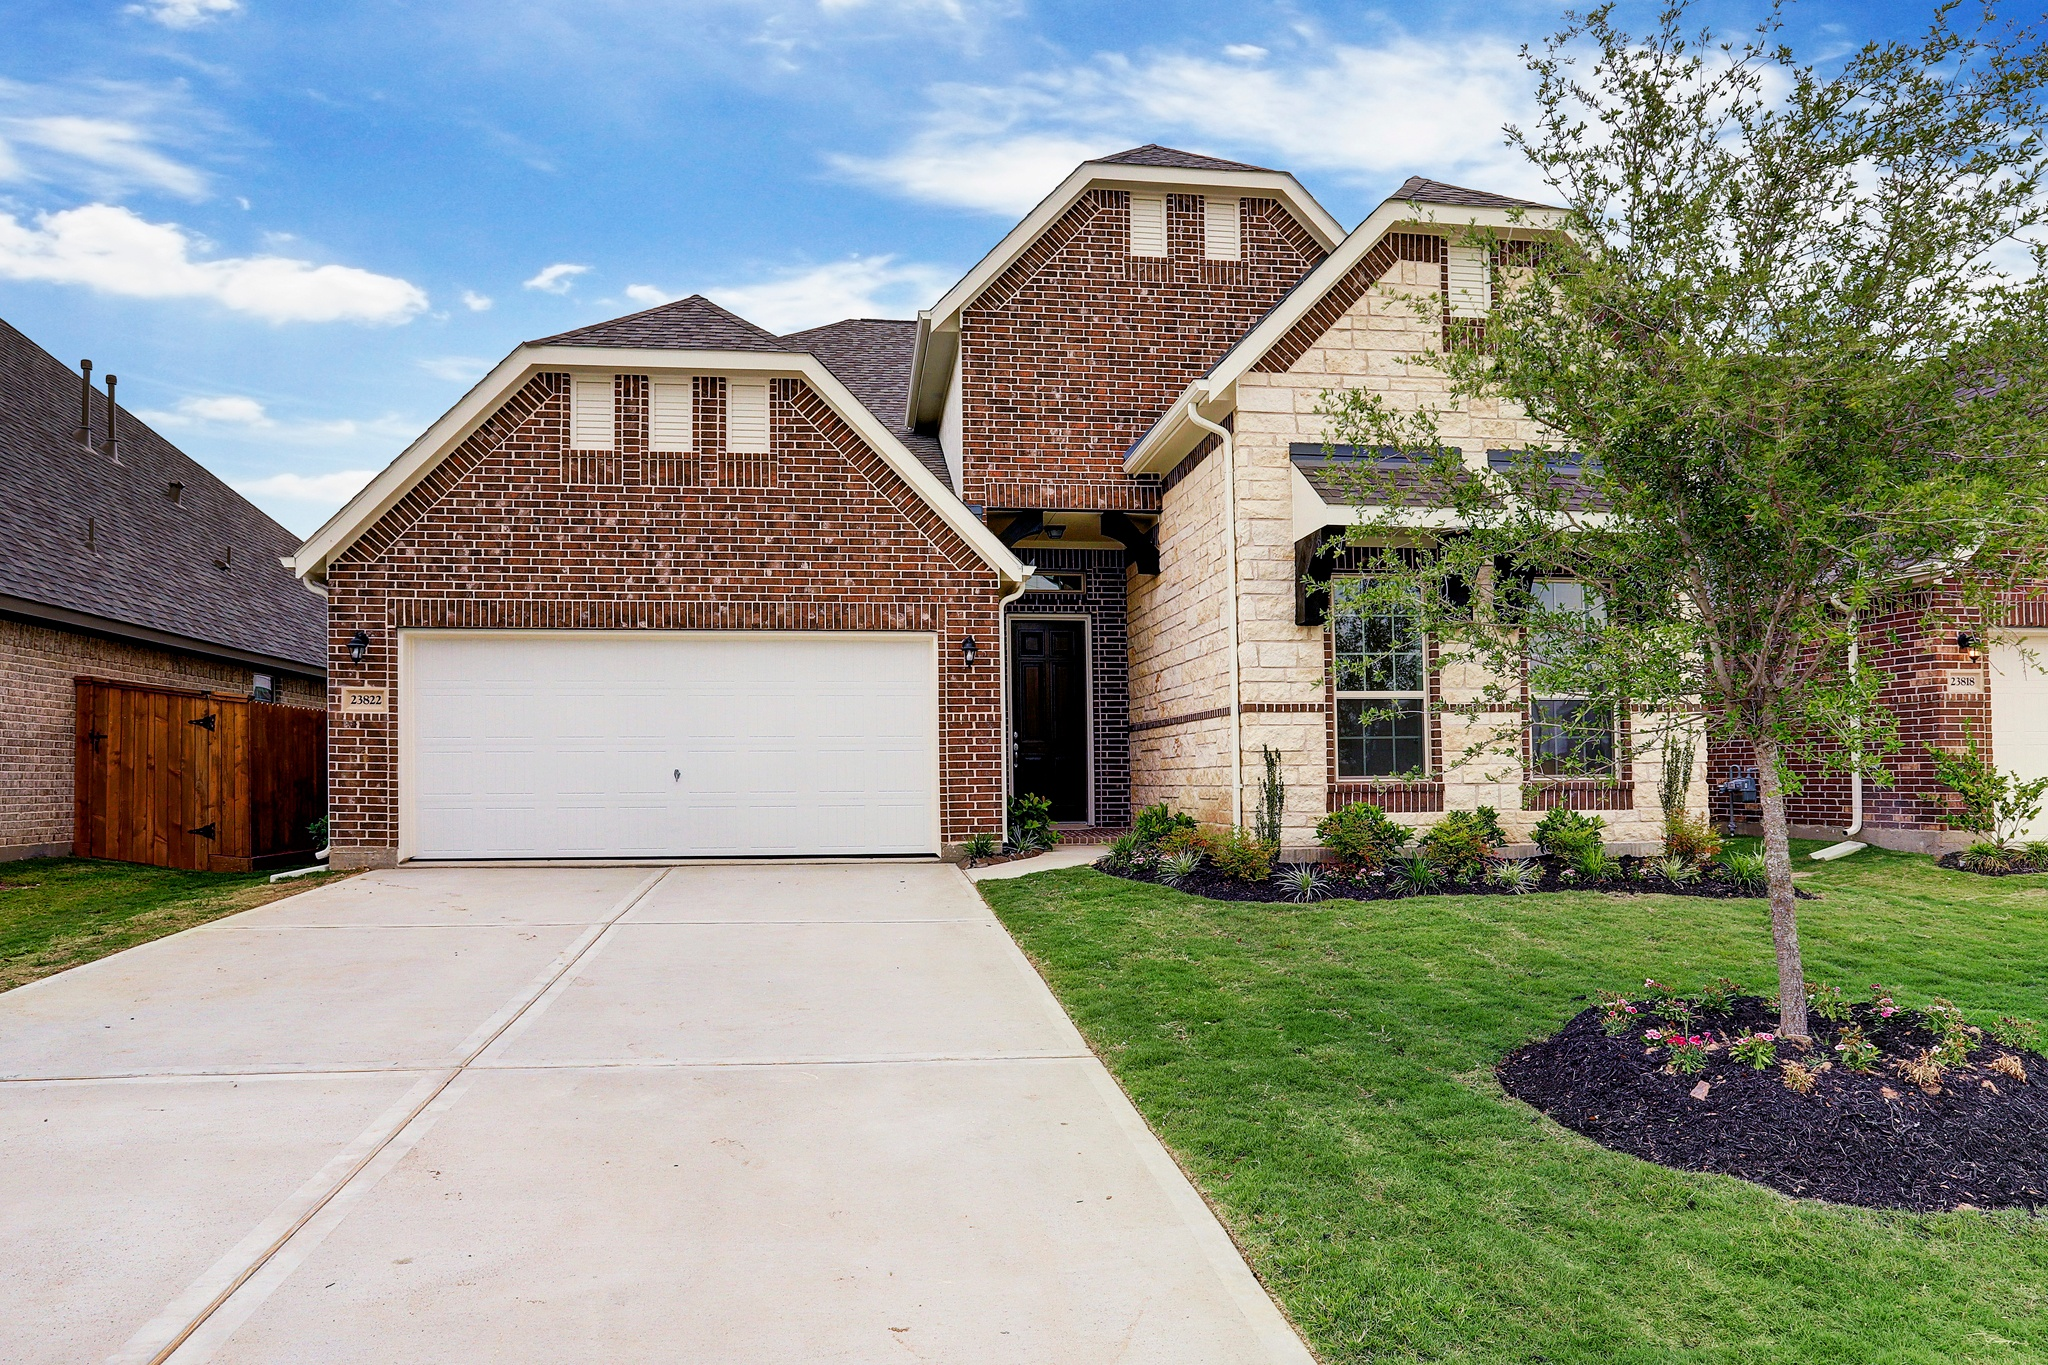 New Home for sale @ 23822 Via Viale Drive, Richmond, TX 77406